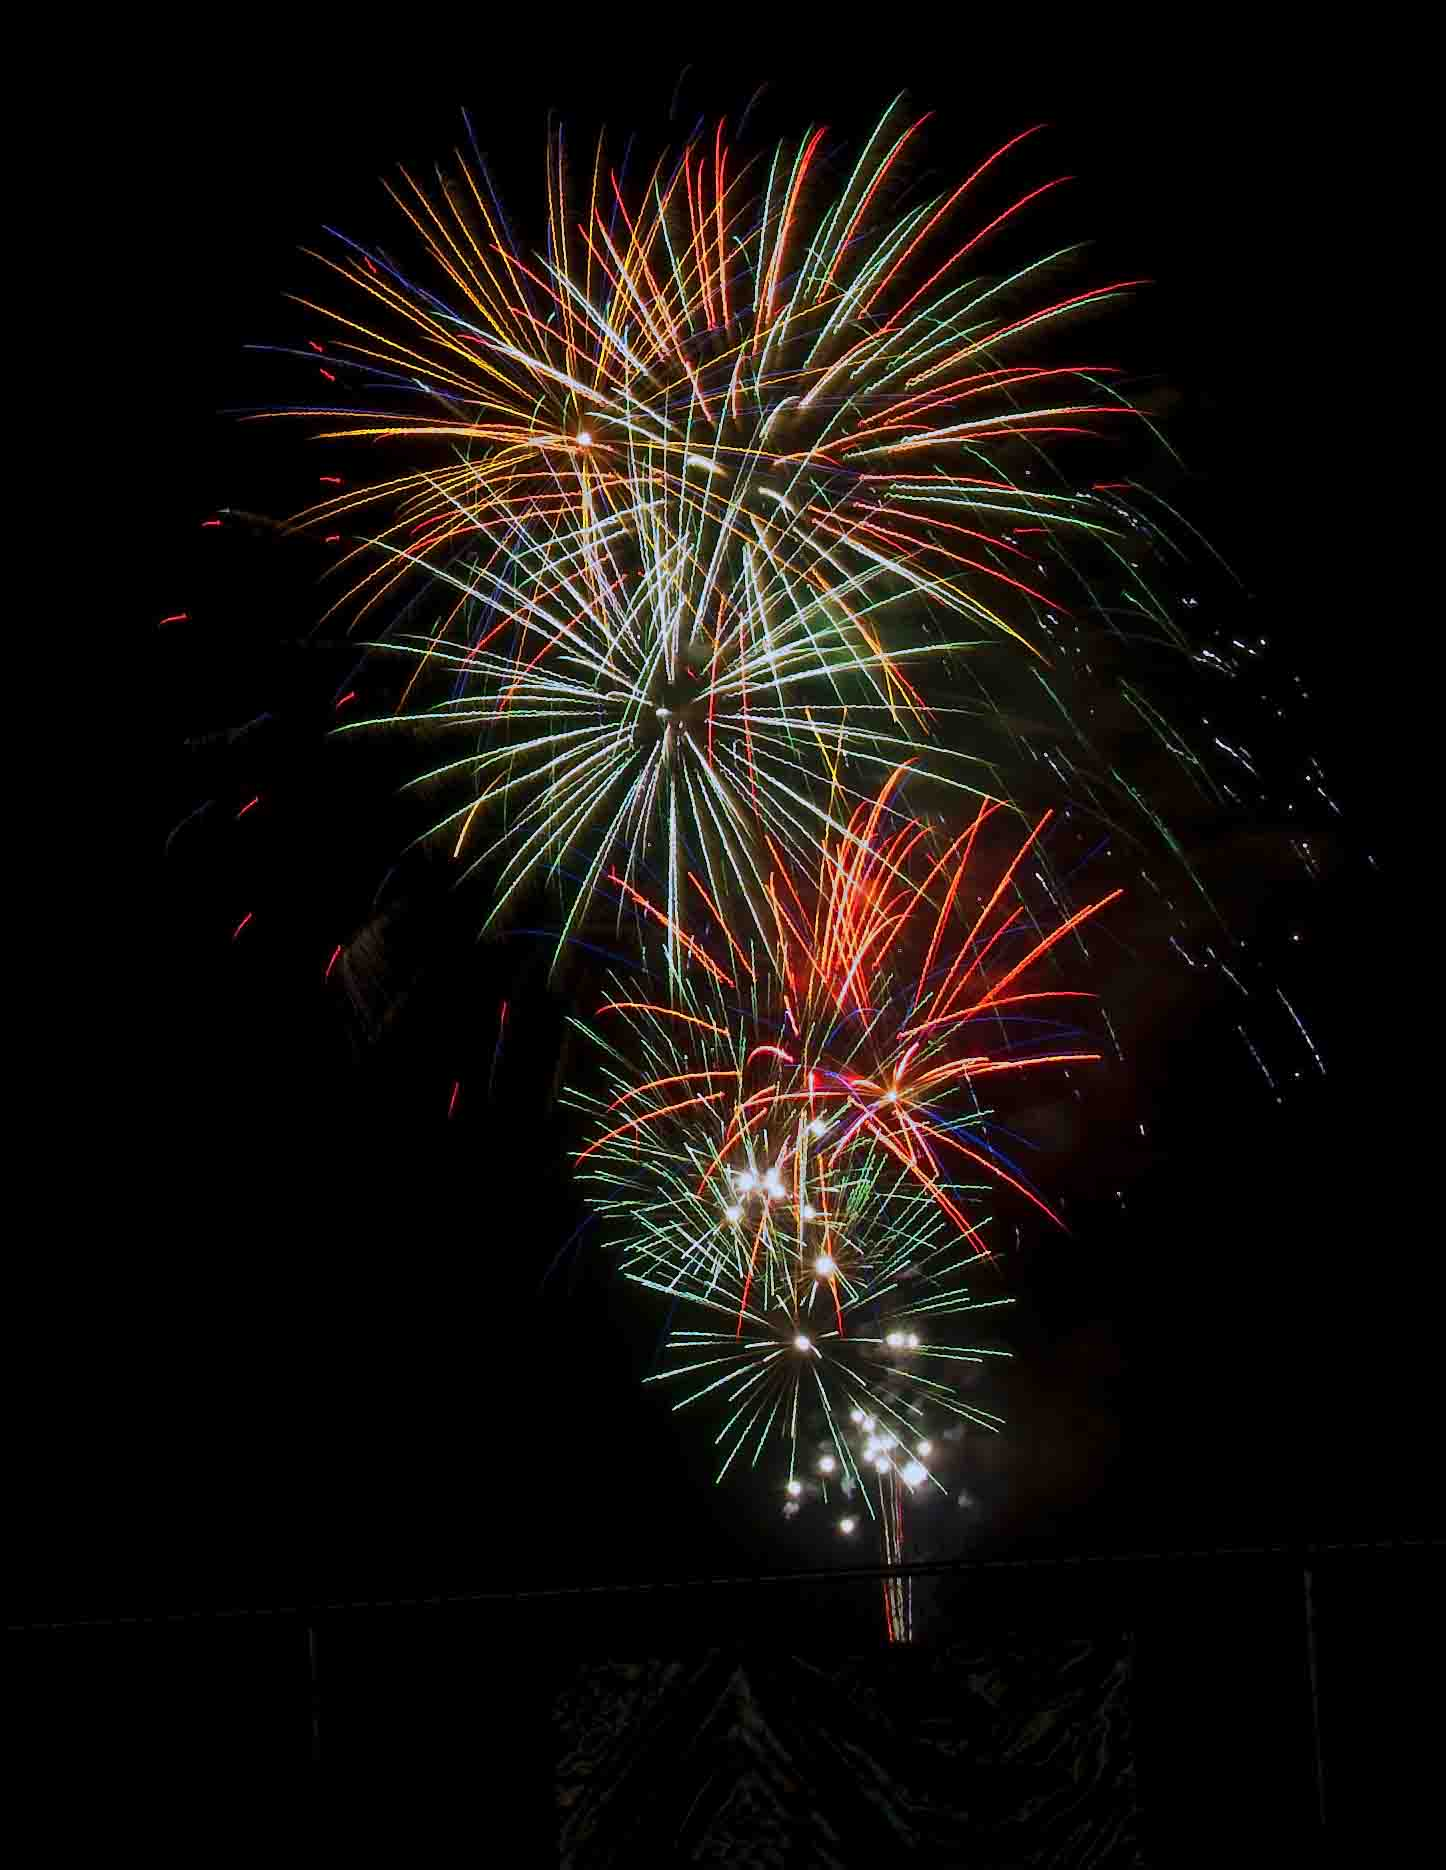 Fireworks In The Sky Bursting In Owensboro Kentucky Image